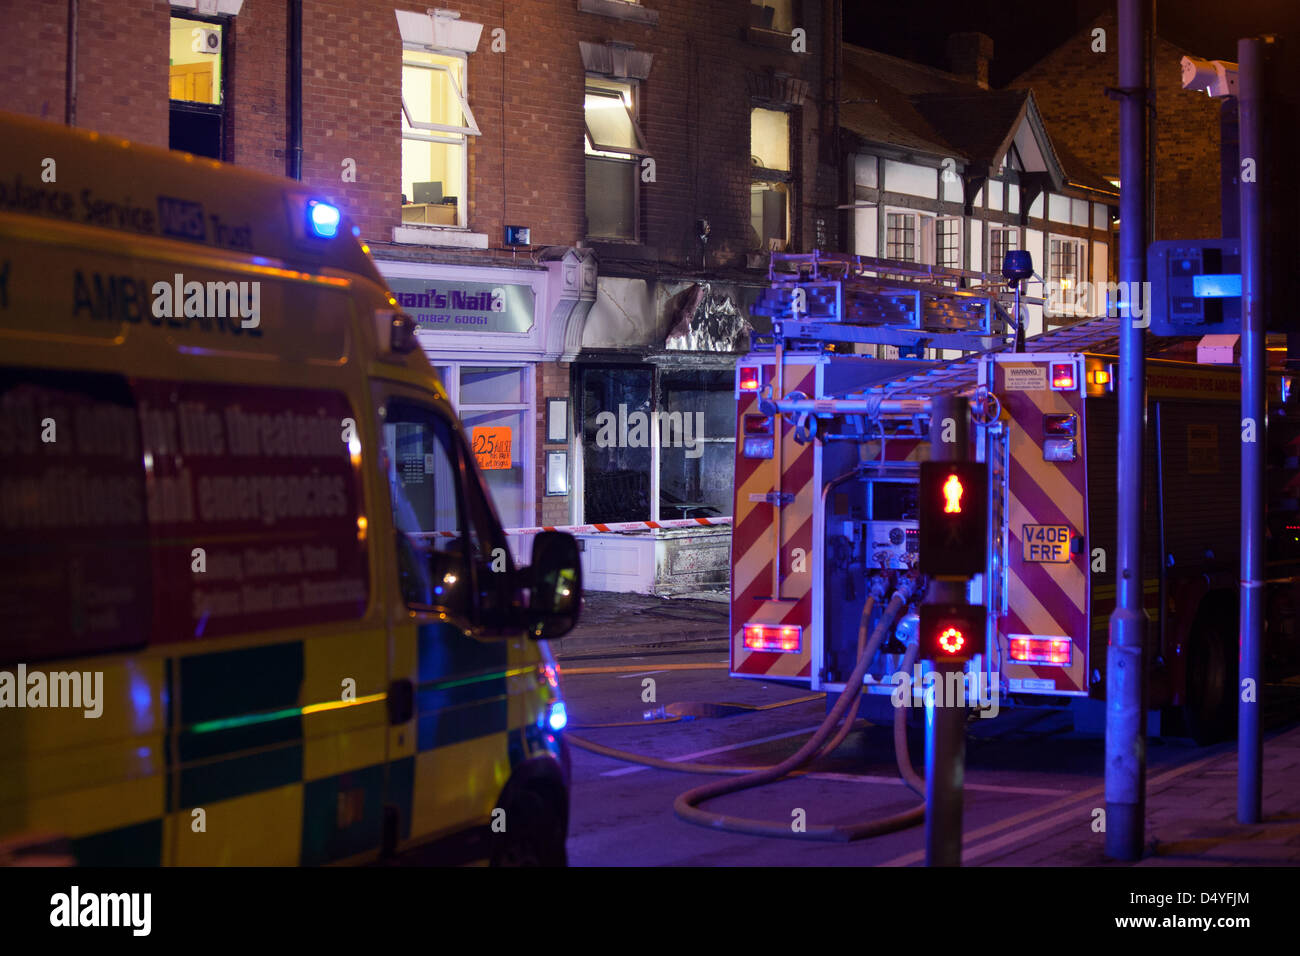 Tamworth, Staffordshire, UK. 20th March 2013. Fire rips through nightclub. Ambulance and Fire Engine with the burnt - Stock Image